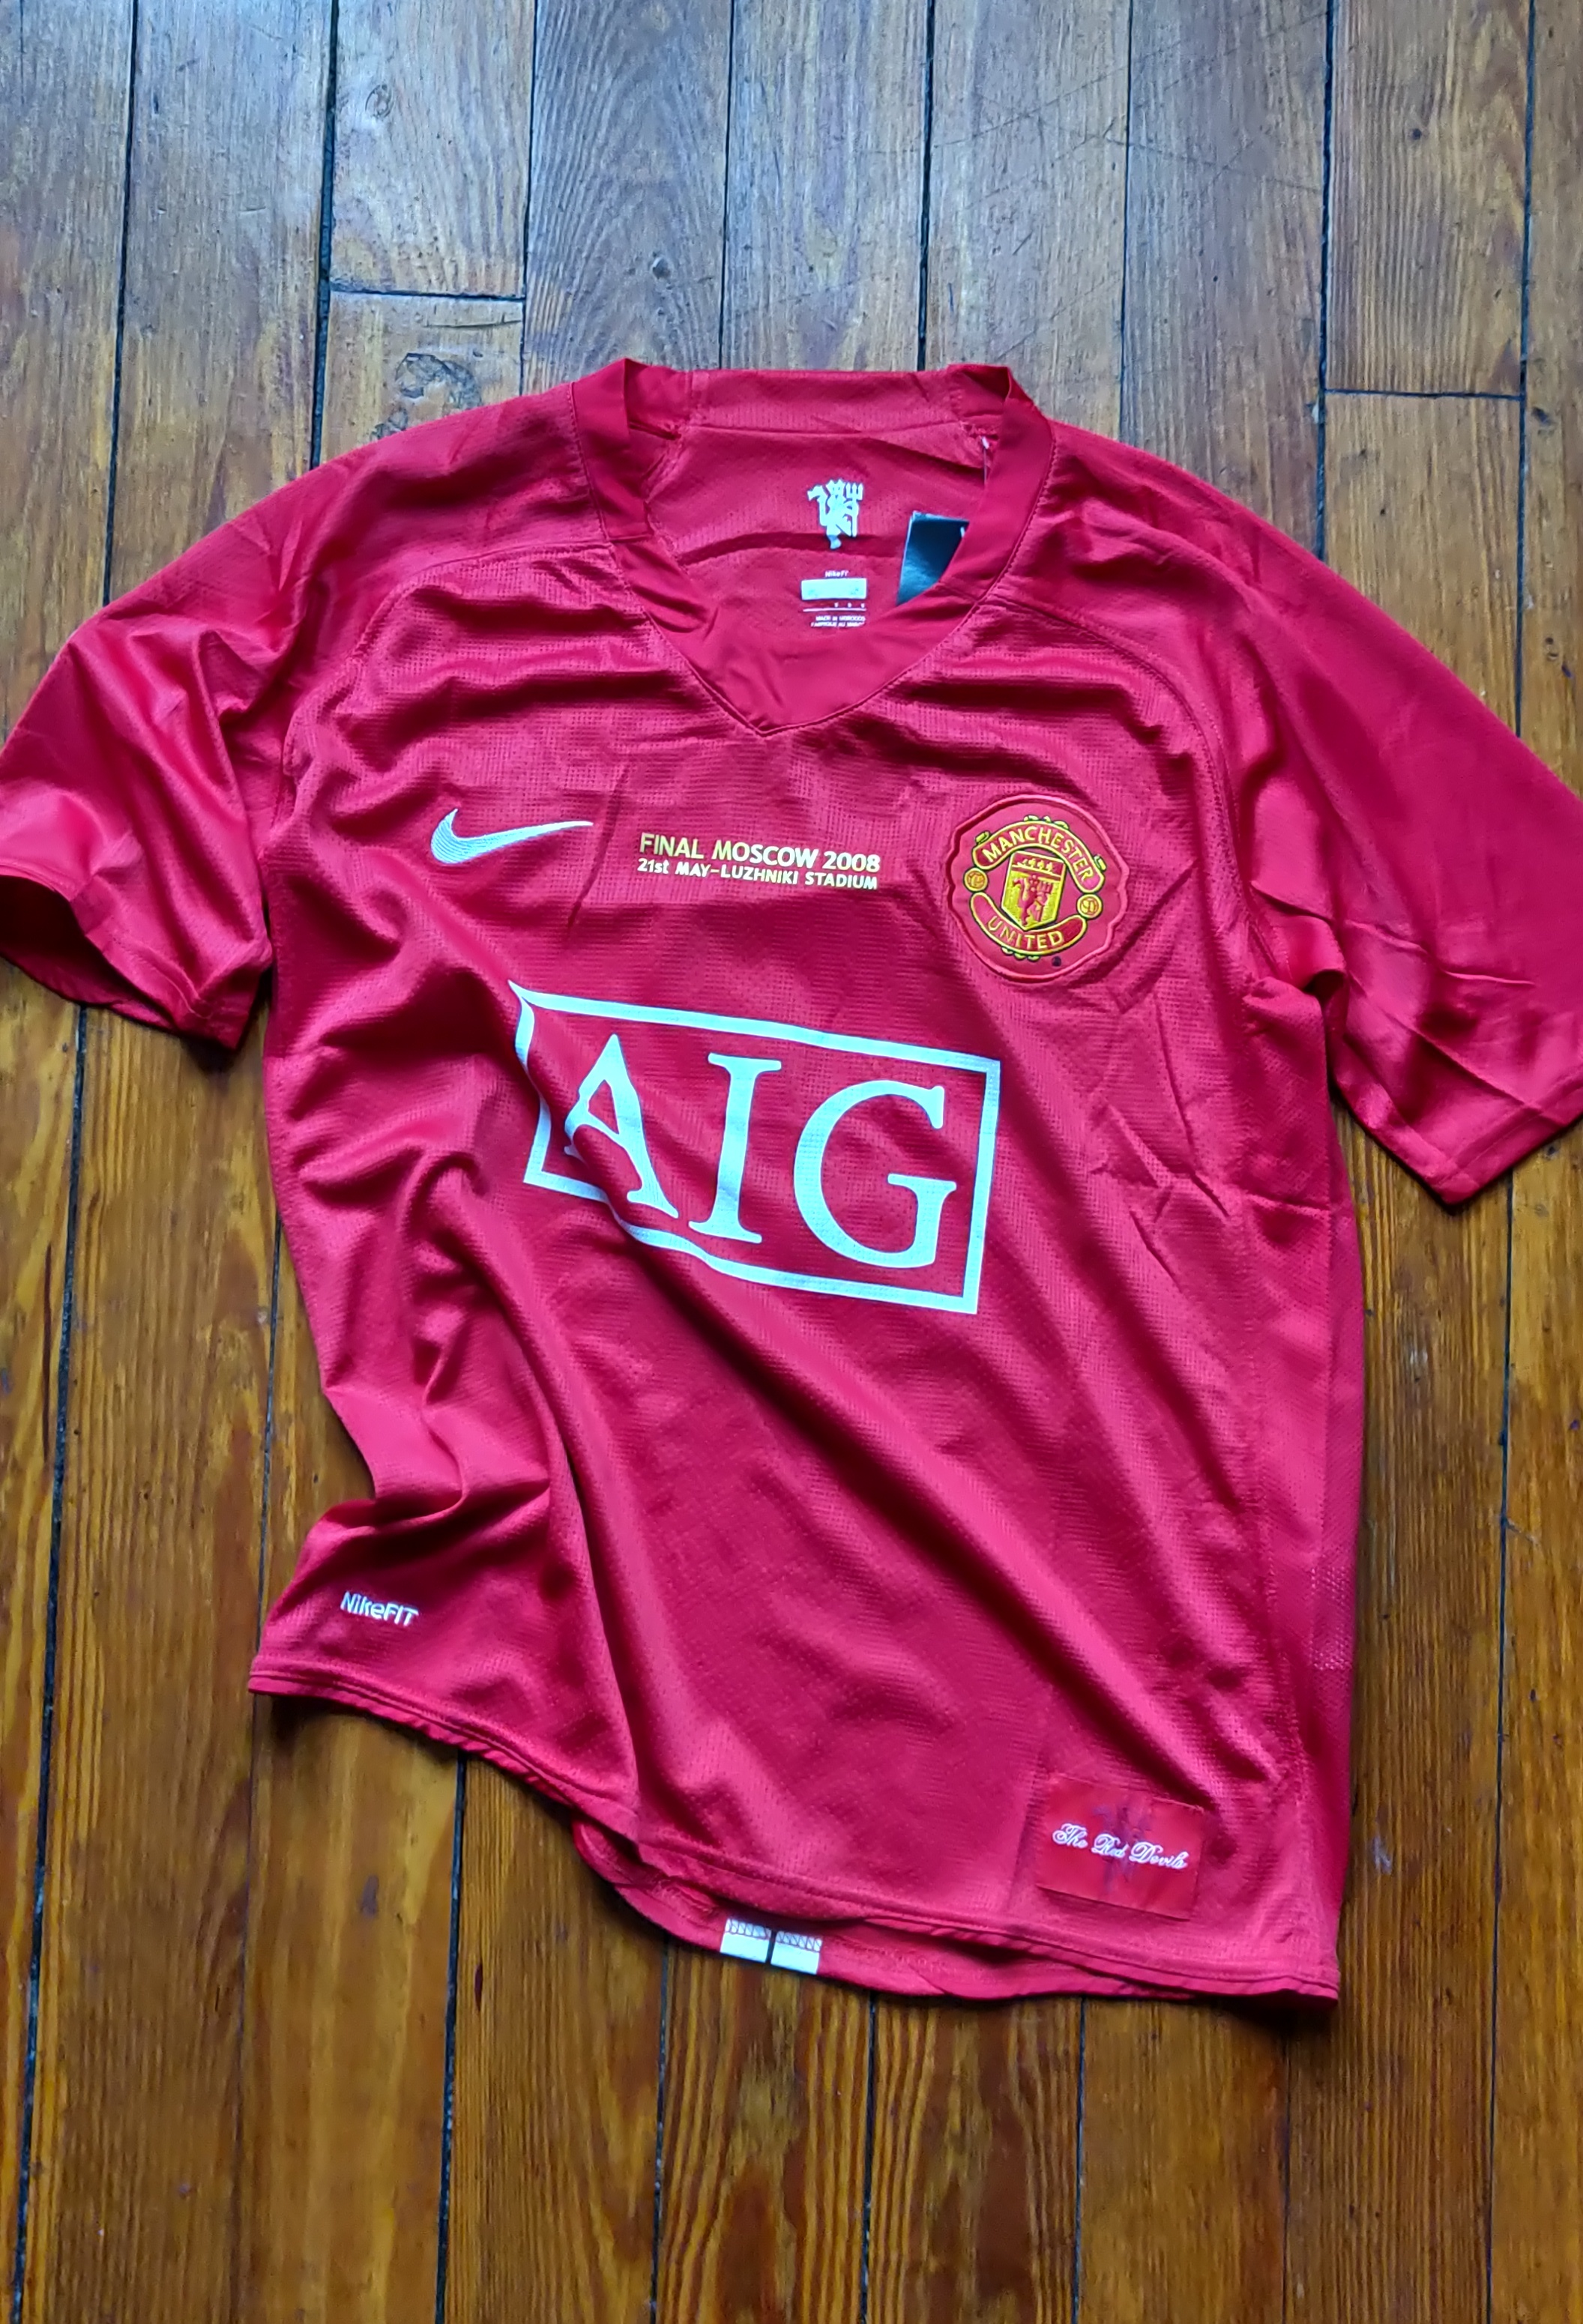 brand new fe240 8bb31 Manchester United 2008 Champions League Final Ronaldo Jersey